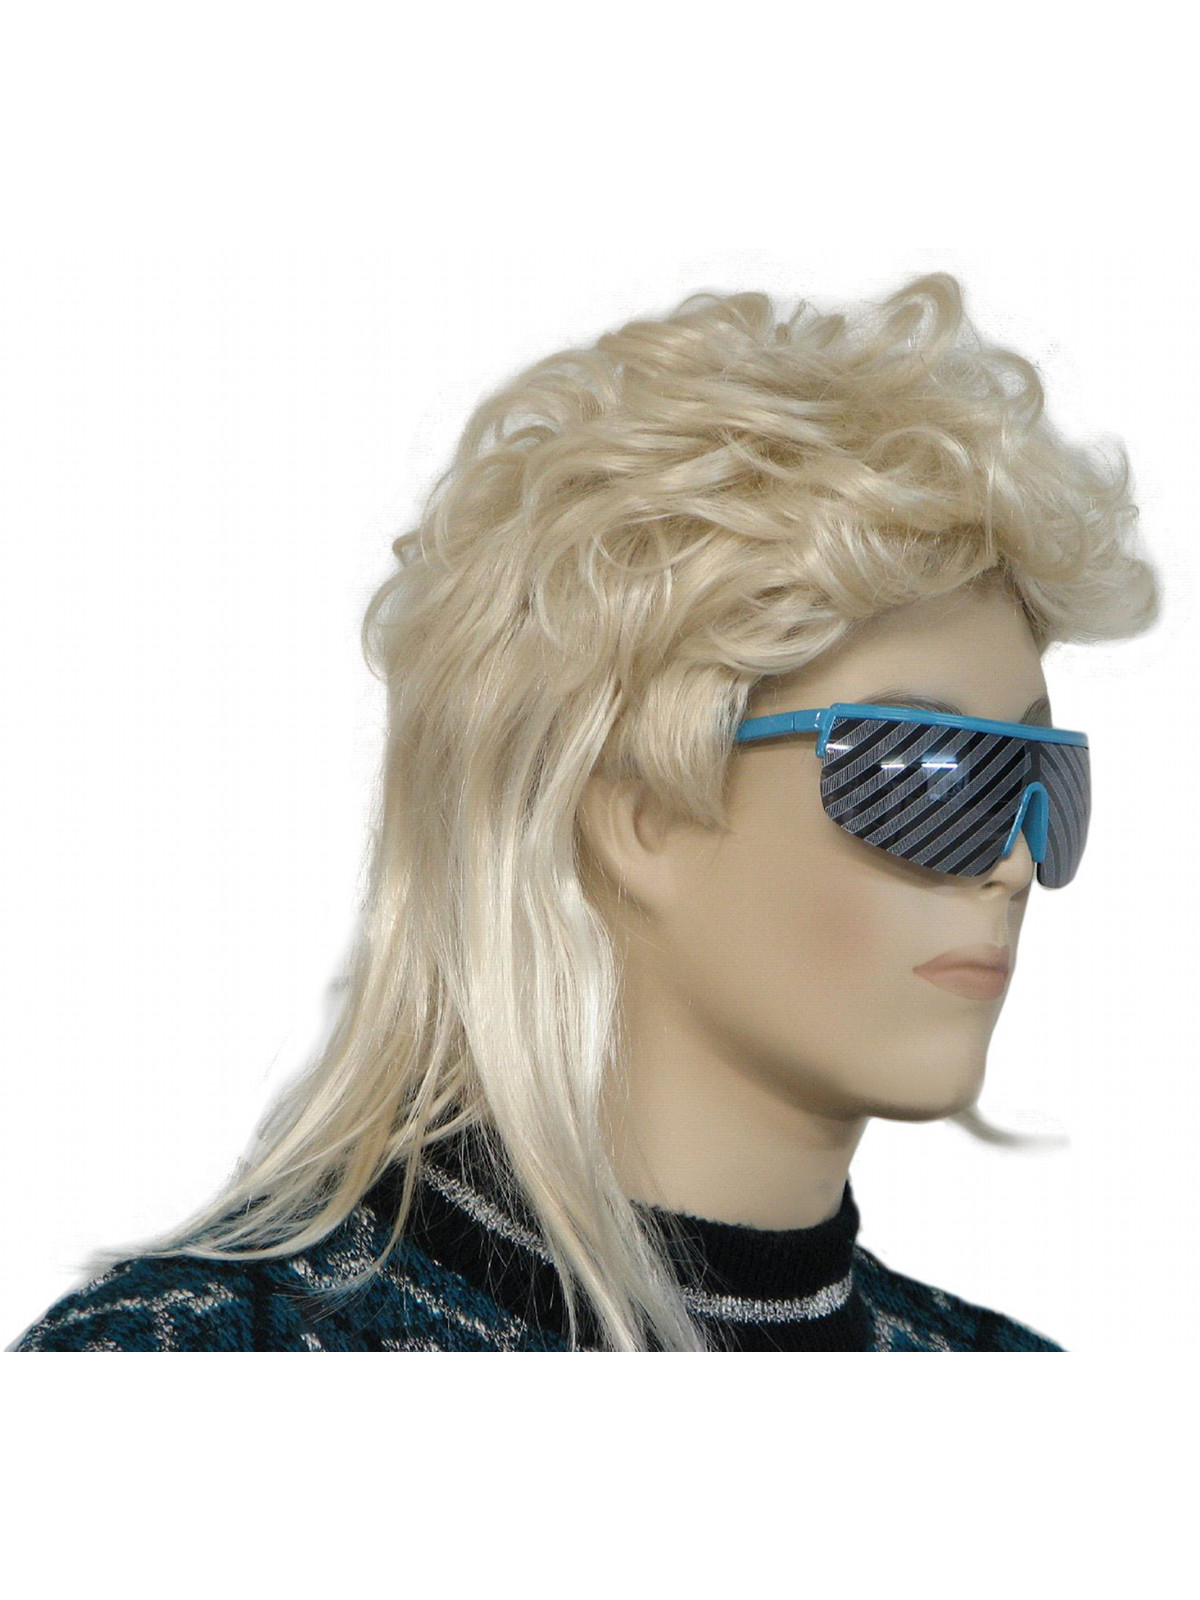 Glasses Mullet Wig Unisex Totally 80s Style Blond